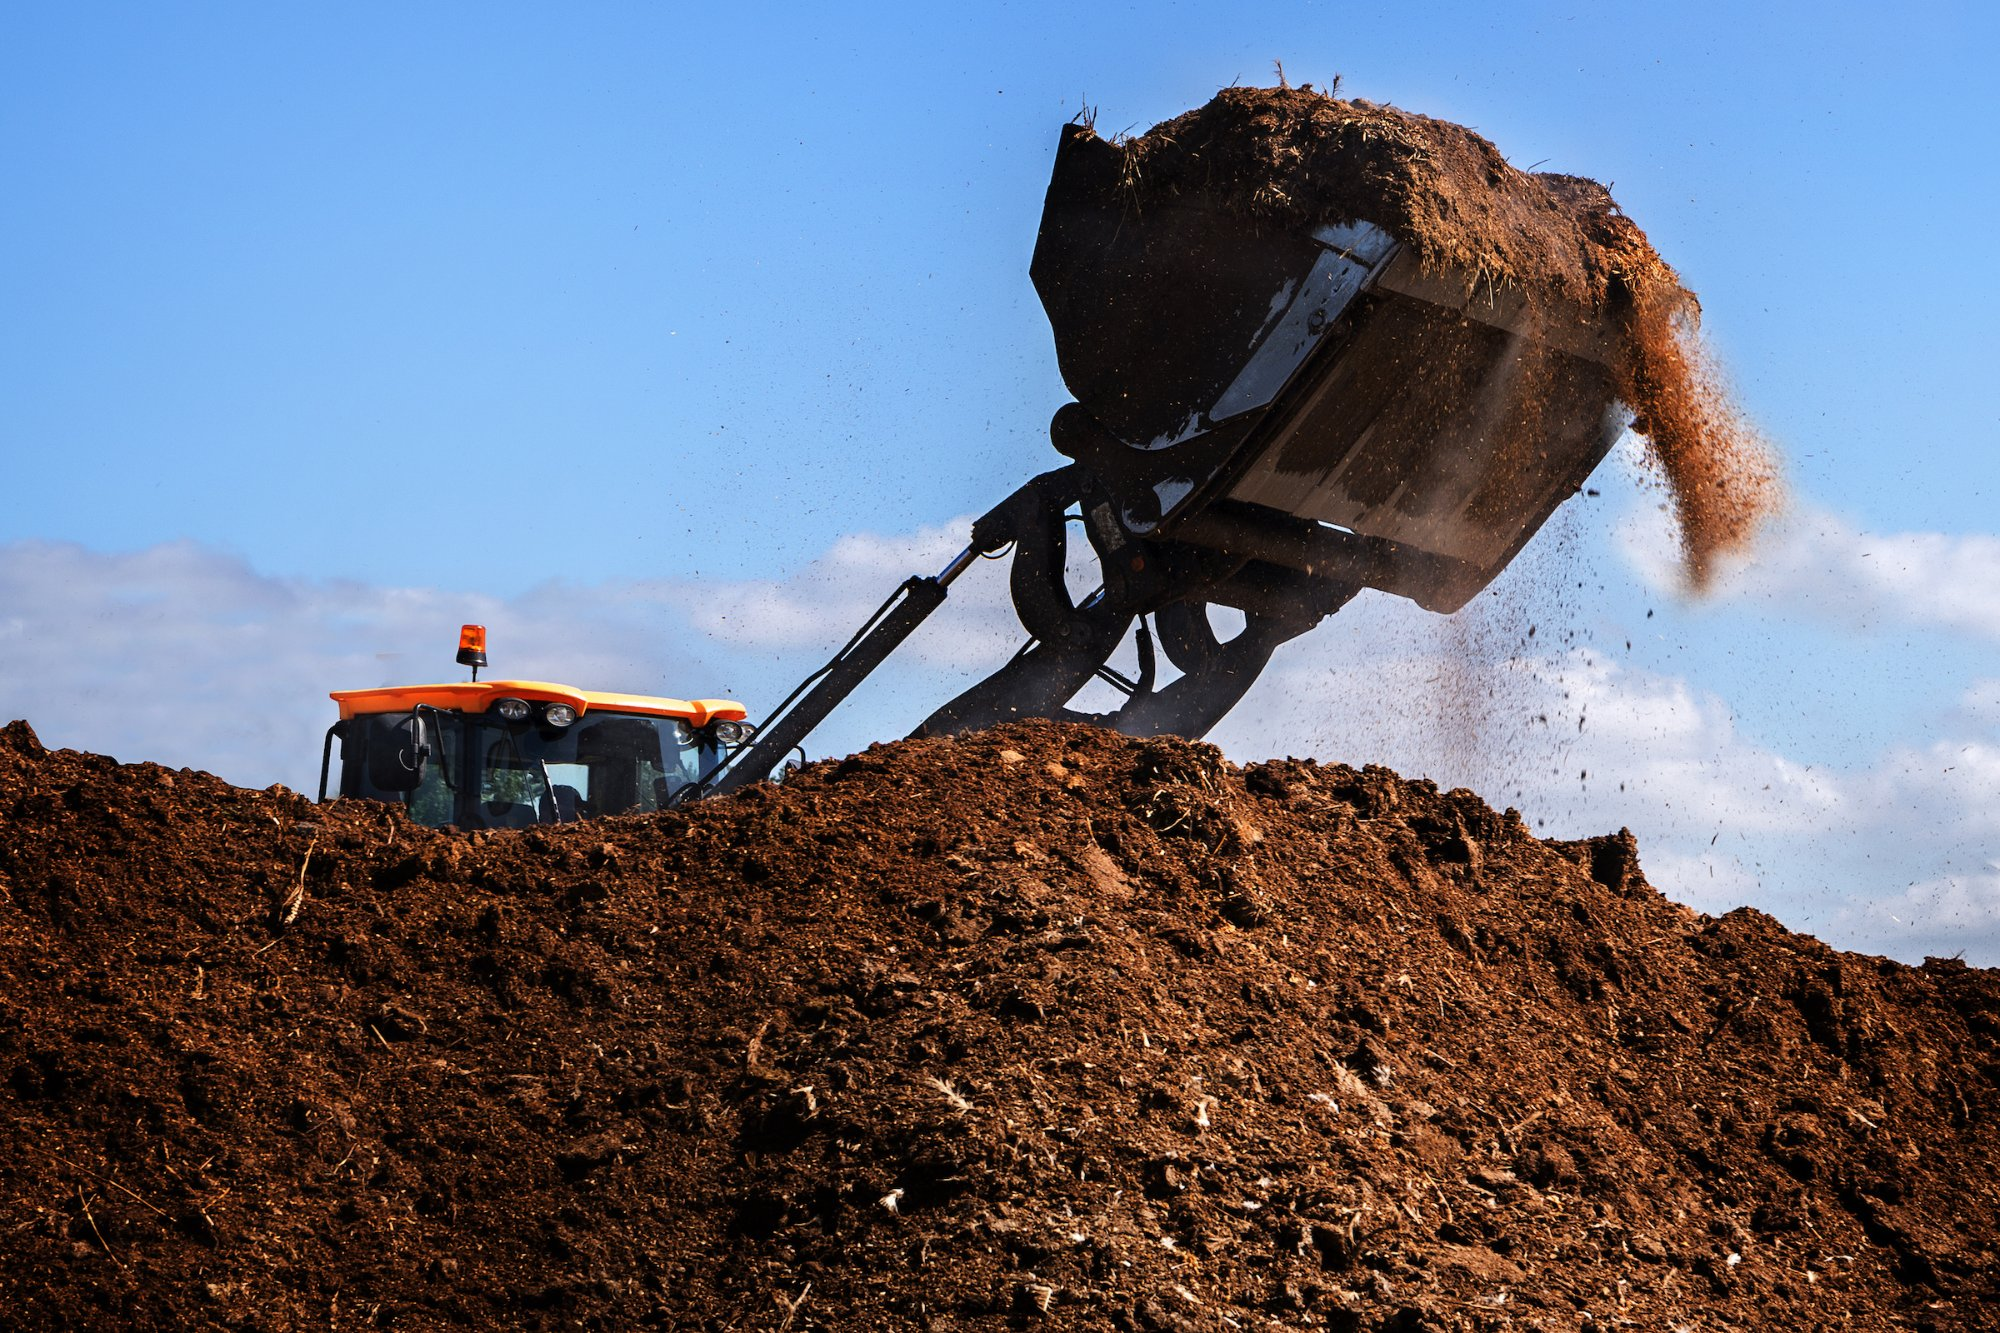 a tractor piling some compost